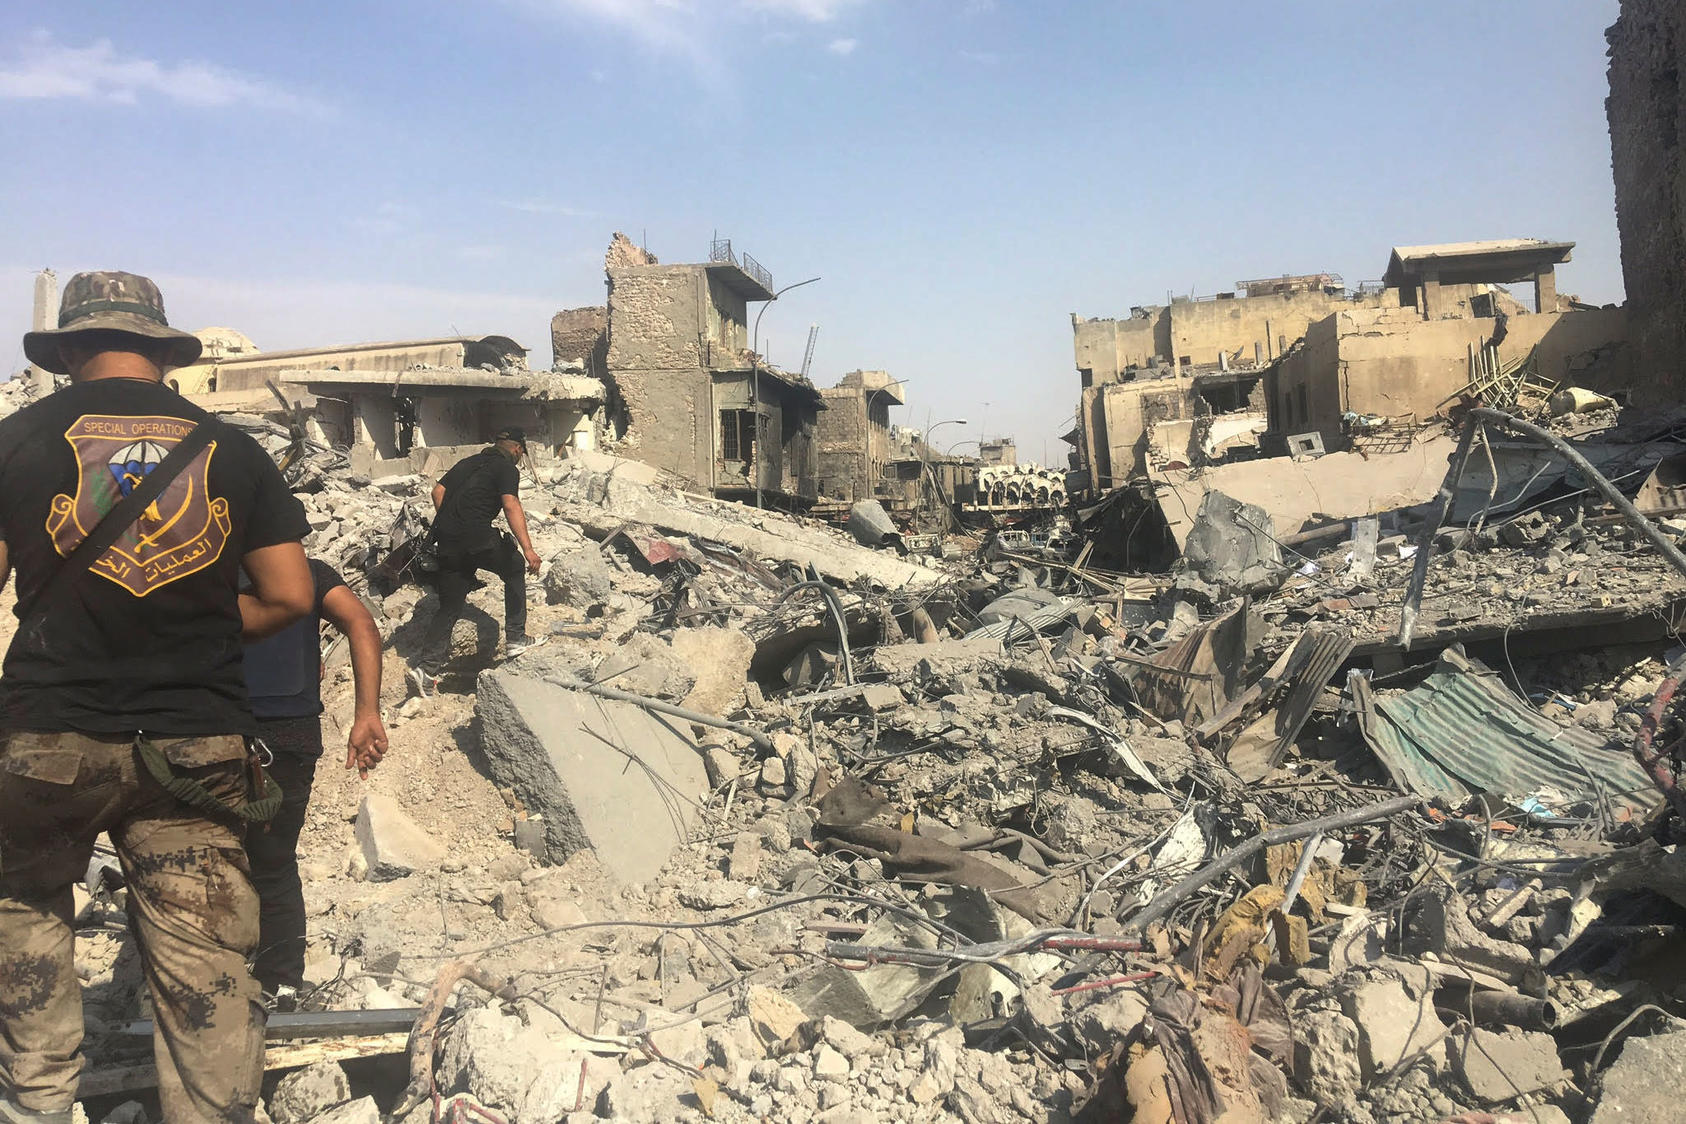 Soldiers pick their way through the ruins of Mosul, Iraq, July 11, 2017. Though Iraq officially declared victory over the Islamic State in Mosul on Sunday, a day later artillery fire could be heard in pockets of the city.